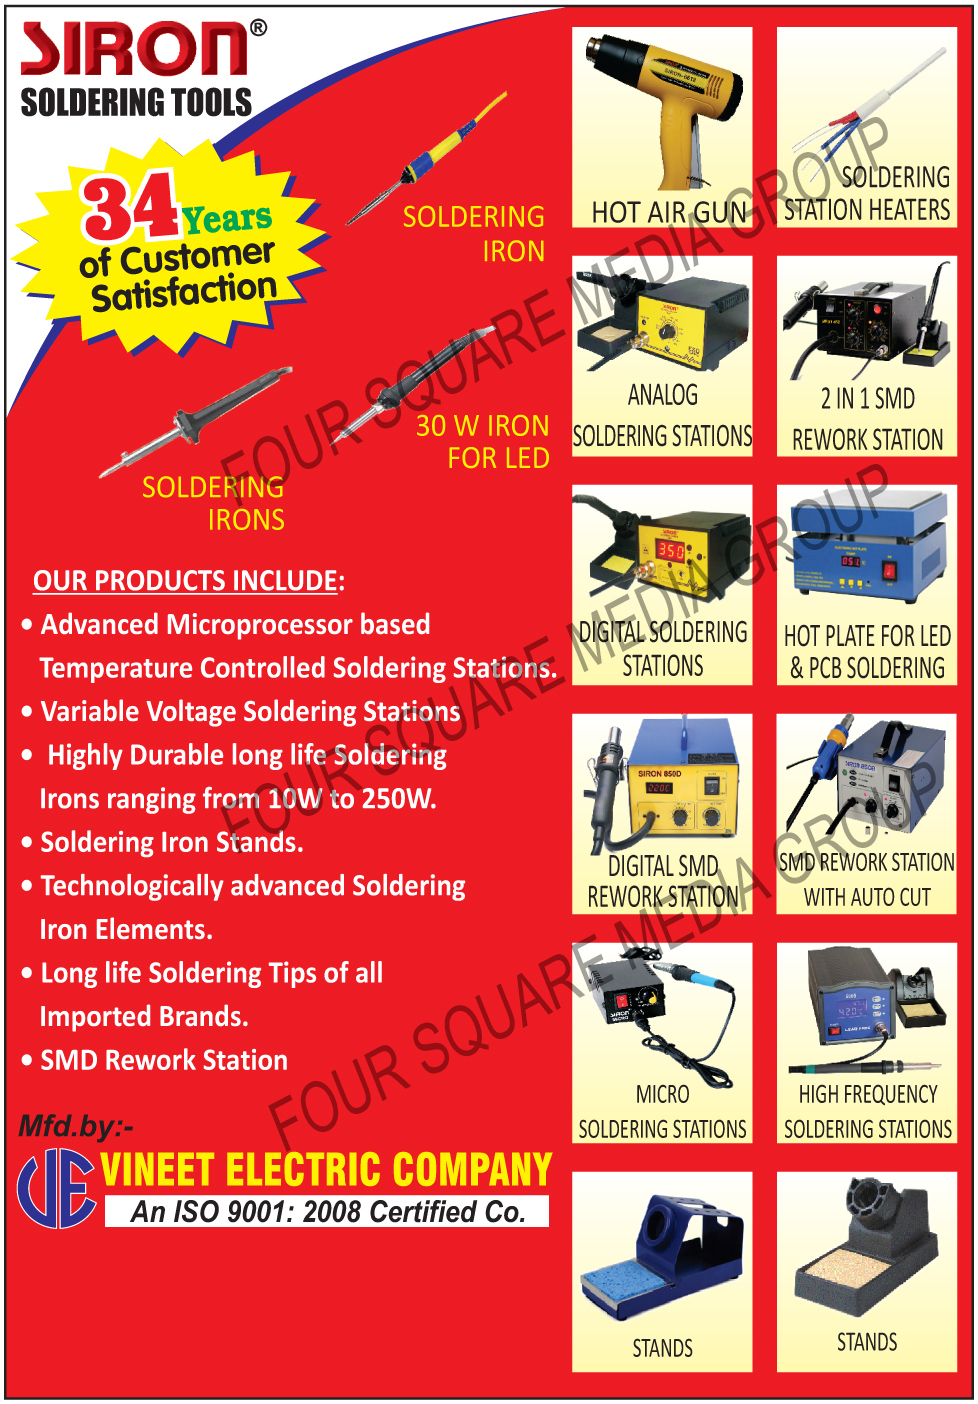 Hot Air Guns, Soldering Station Heaters, Analog Soldering Stations, Digital Soldering Stations, Digital SMD Rework Stations, Micro Soldering Stations, Soldering Iron Stands, Soldering Stations, SMD Rework Station, Hot Plate, Soldering Tools, Variable Voltage Soldering Stations, Temperature Controlled Soldering Stations, Soldering Iron Elements, Soldering Irons